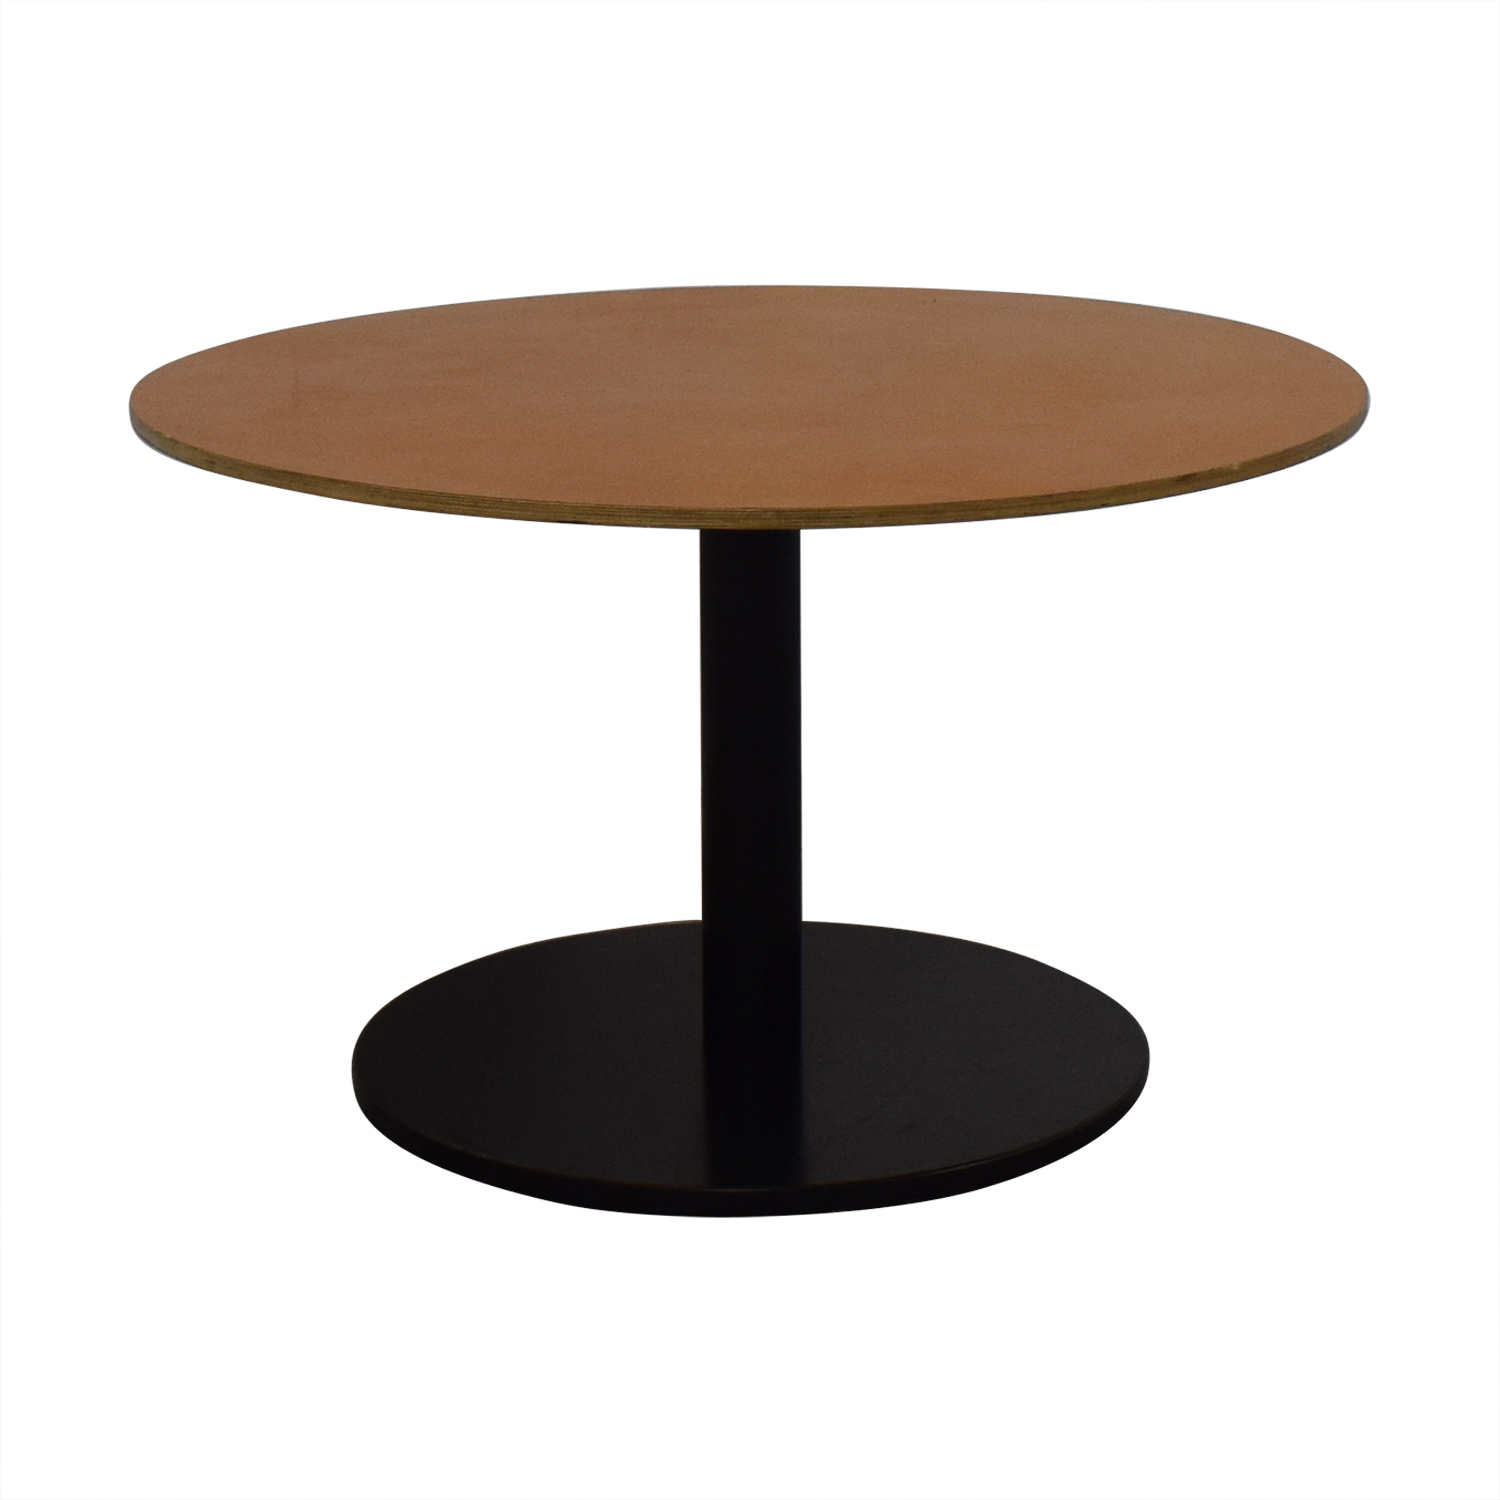 Minimalist Round Dining Table nyc